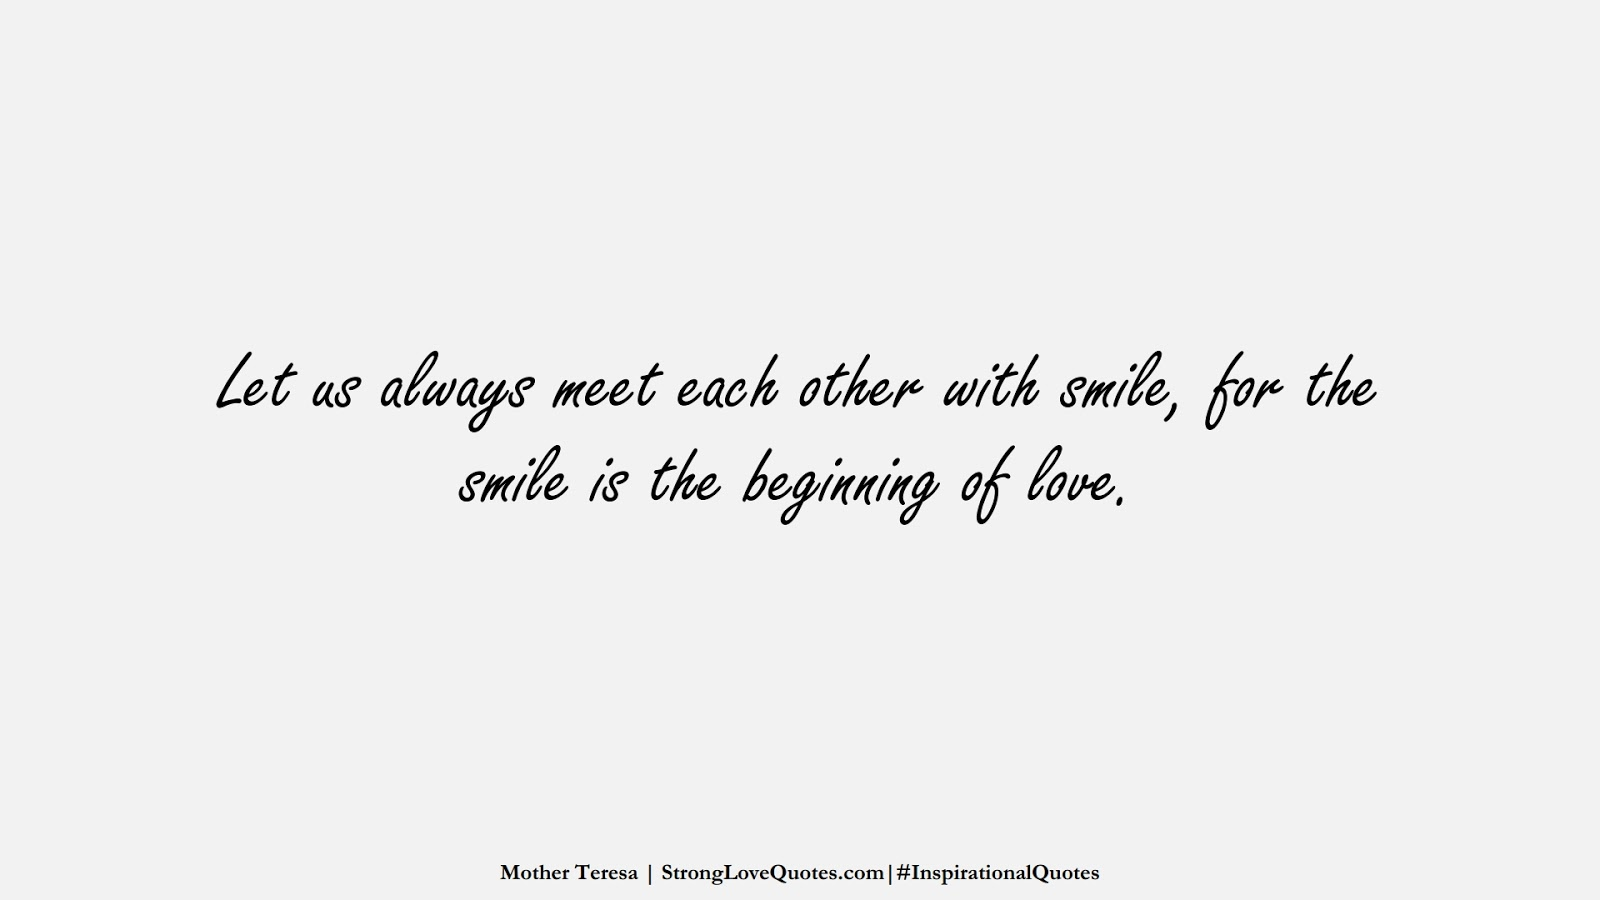 Let us always meet each other with smile, for the smile is the beginning of love. (Mother Teresa);  #InspirationalQuotes